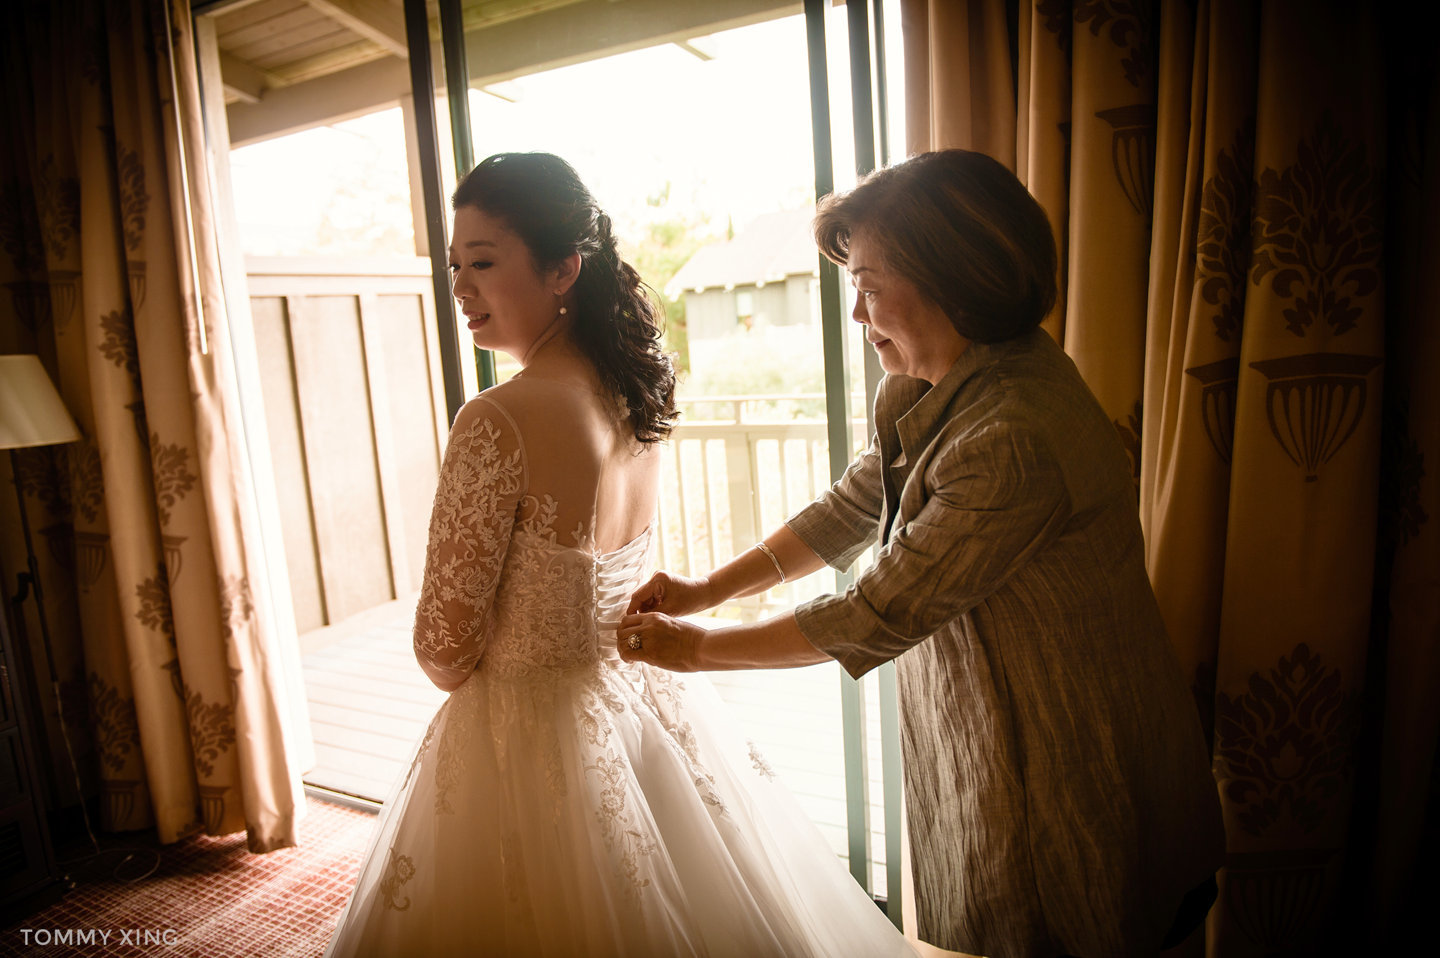 San Francisco Wedding Photography Valley Presbyterian Church WEDDING Tommy Xing Photography 洛杉矶旧金山婚礼婚纱照摄影师029.jpg